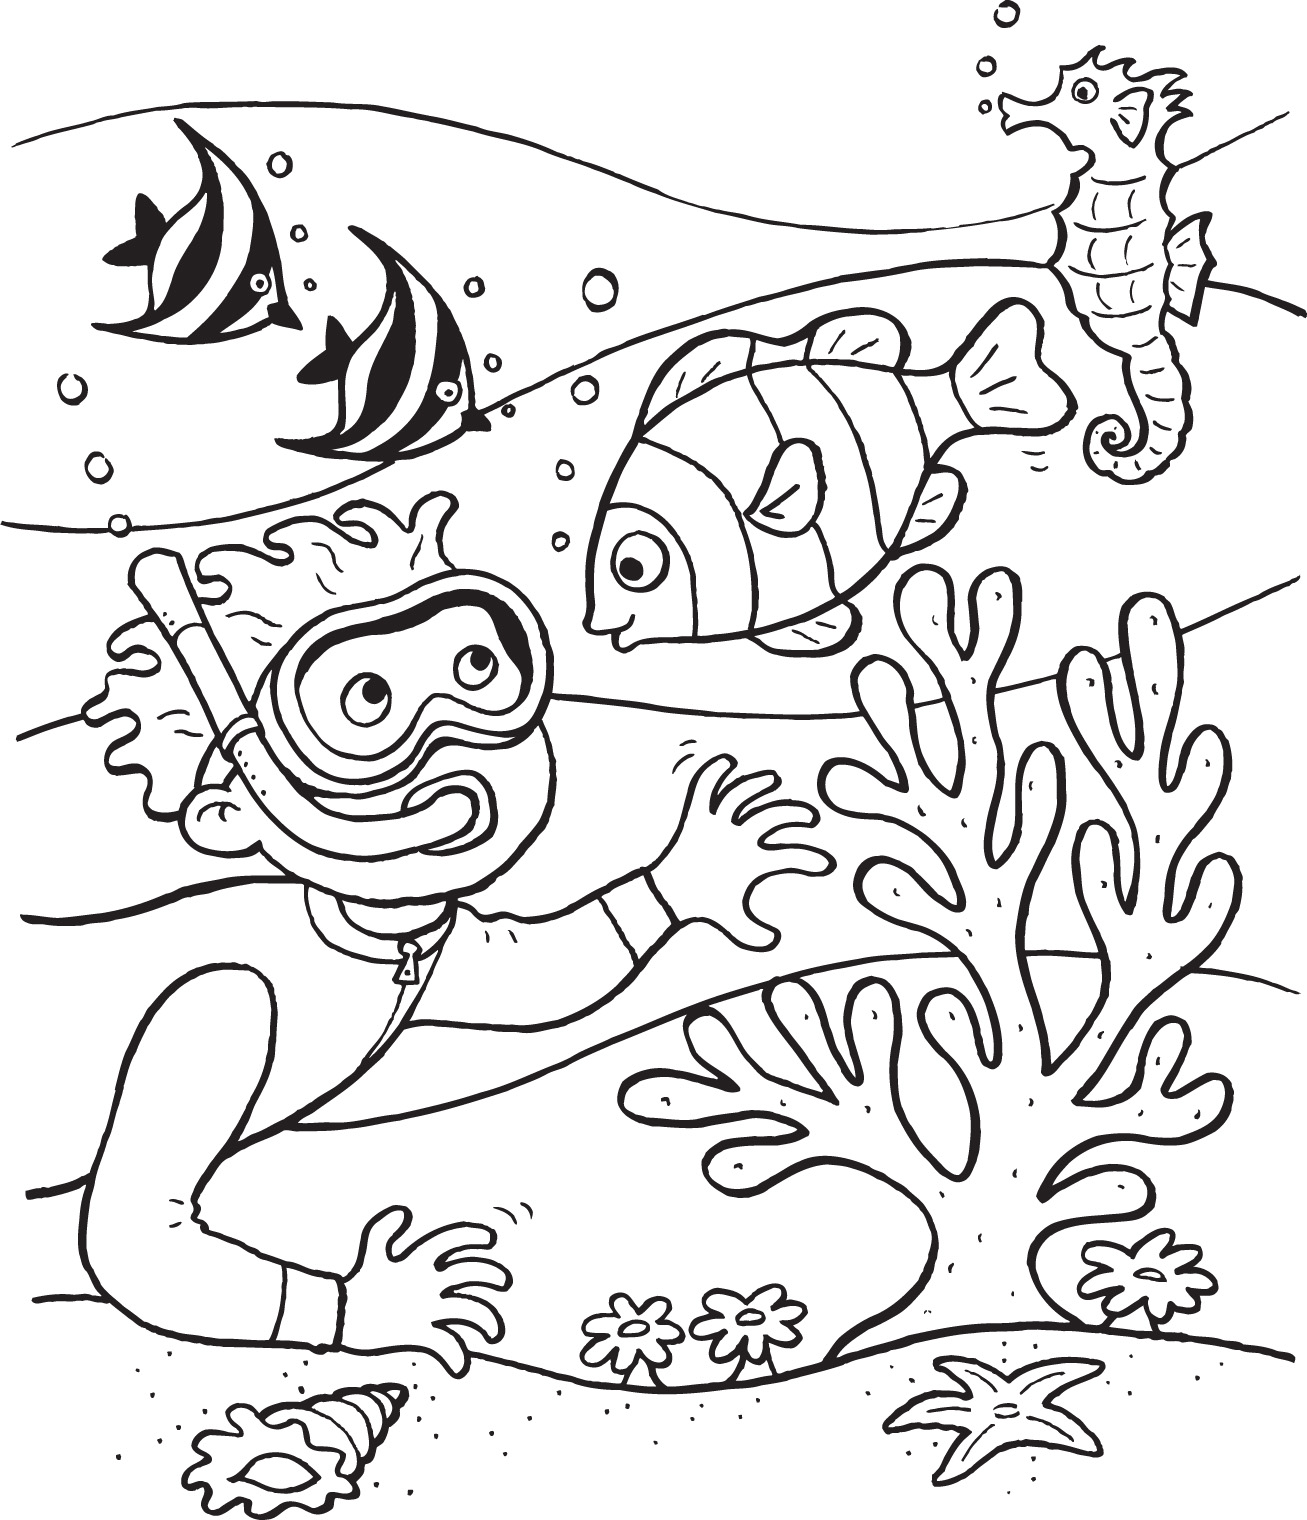 Ocean Coloring Pages For Kids At Getdrawings